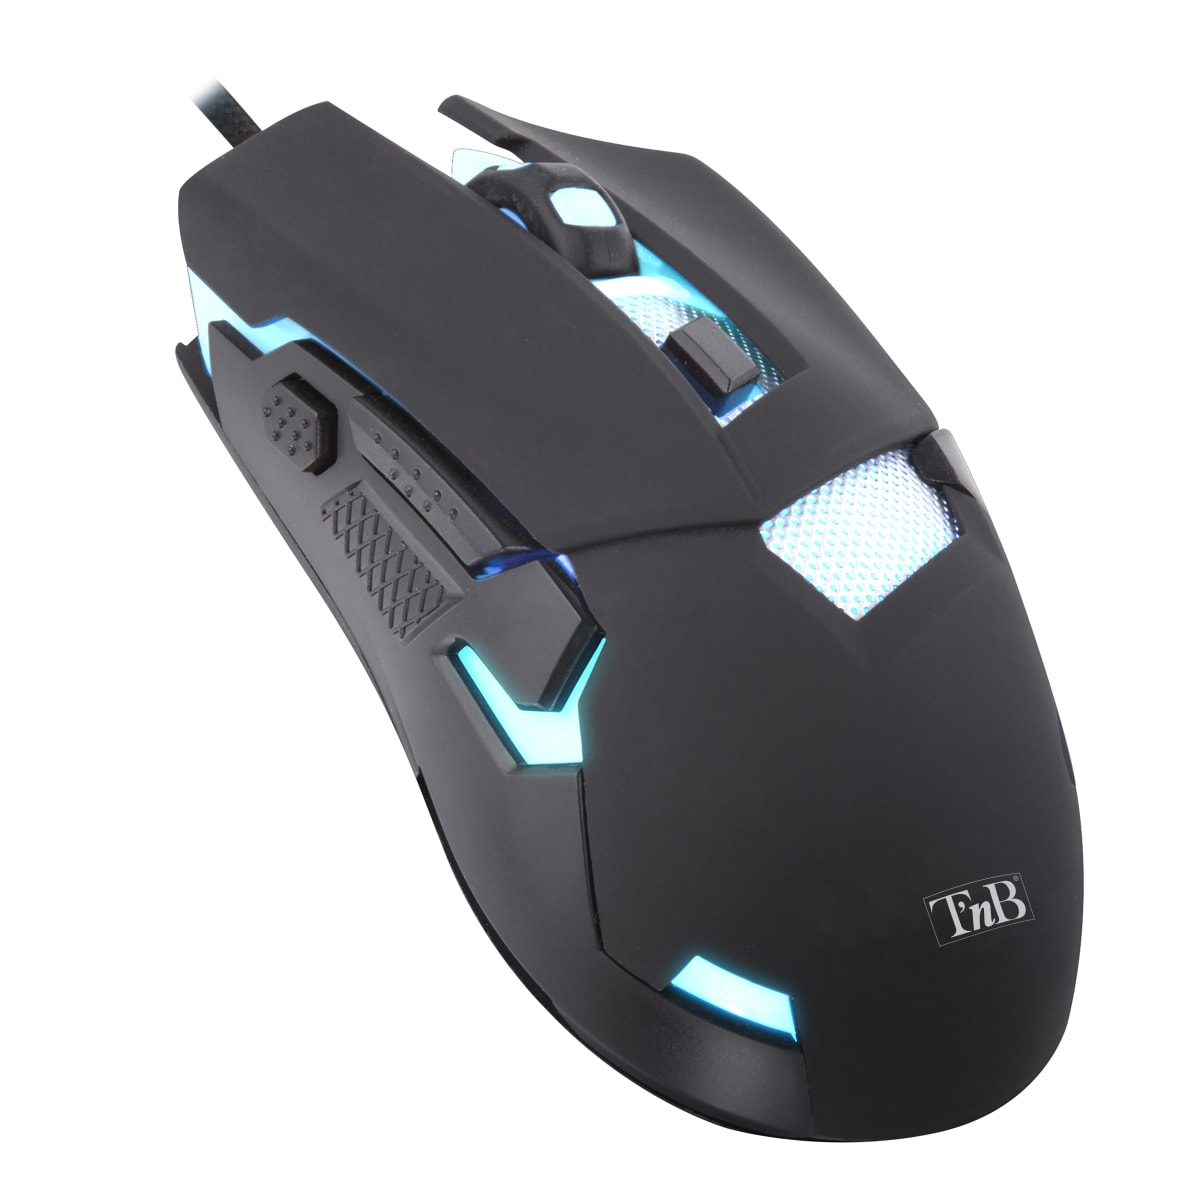 Rage office mouse